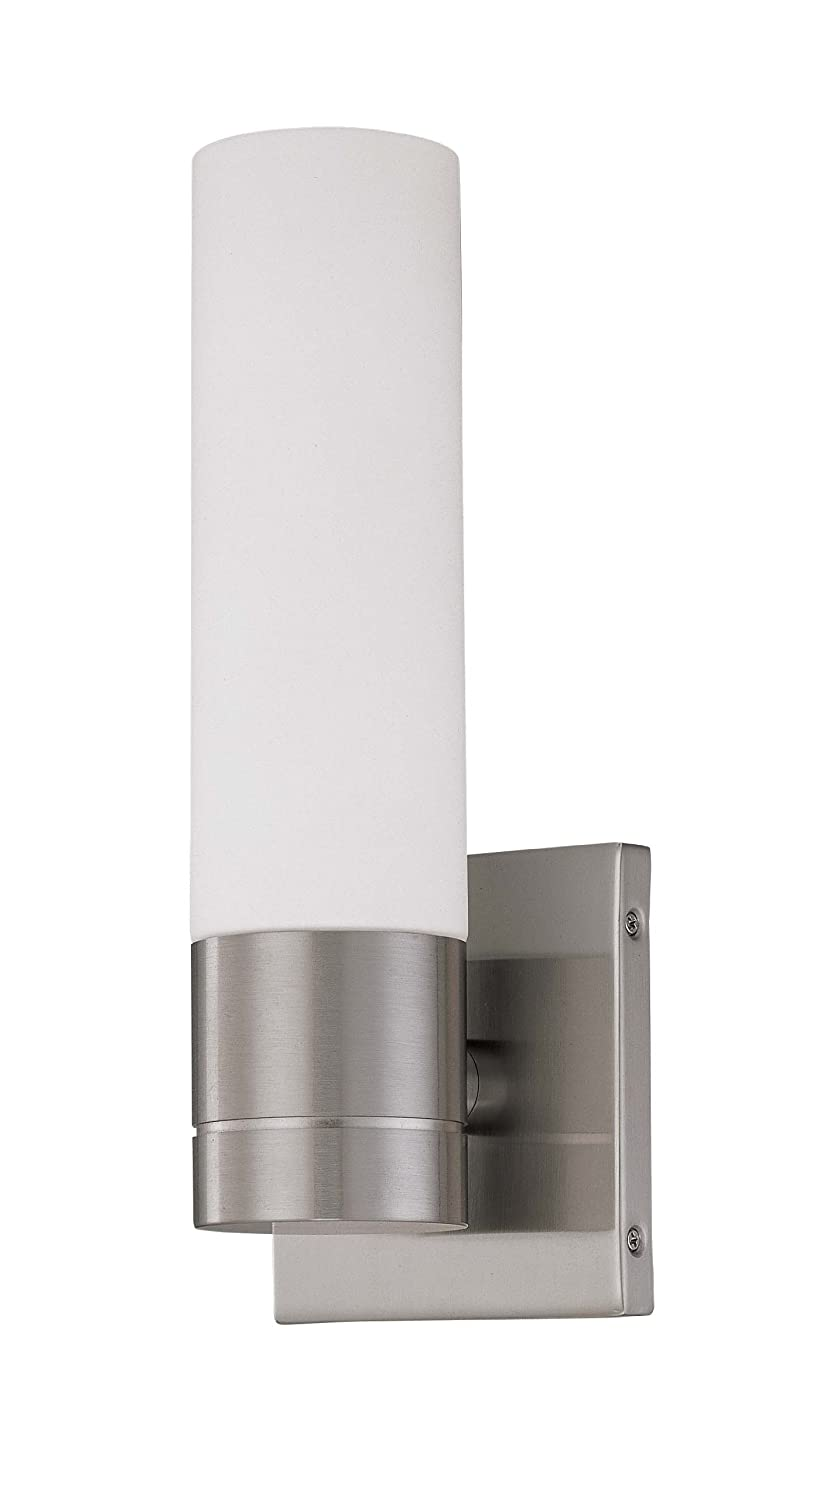 Nuvo Lighting 60/3955 Link 2 Light Double Tube Wall Sconce With White  Glass, Brushed Nickel   Bathroom Light Fixtures   Amazon.com